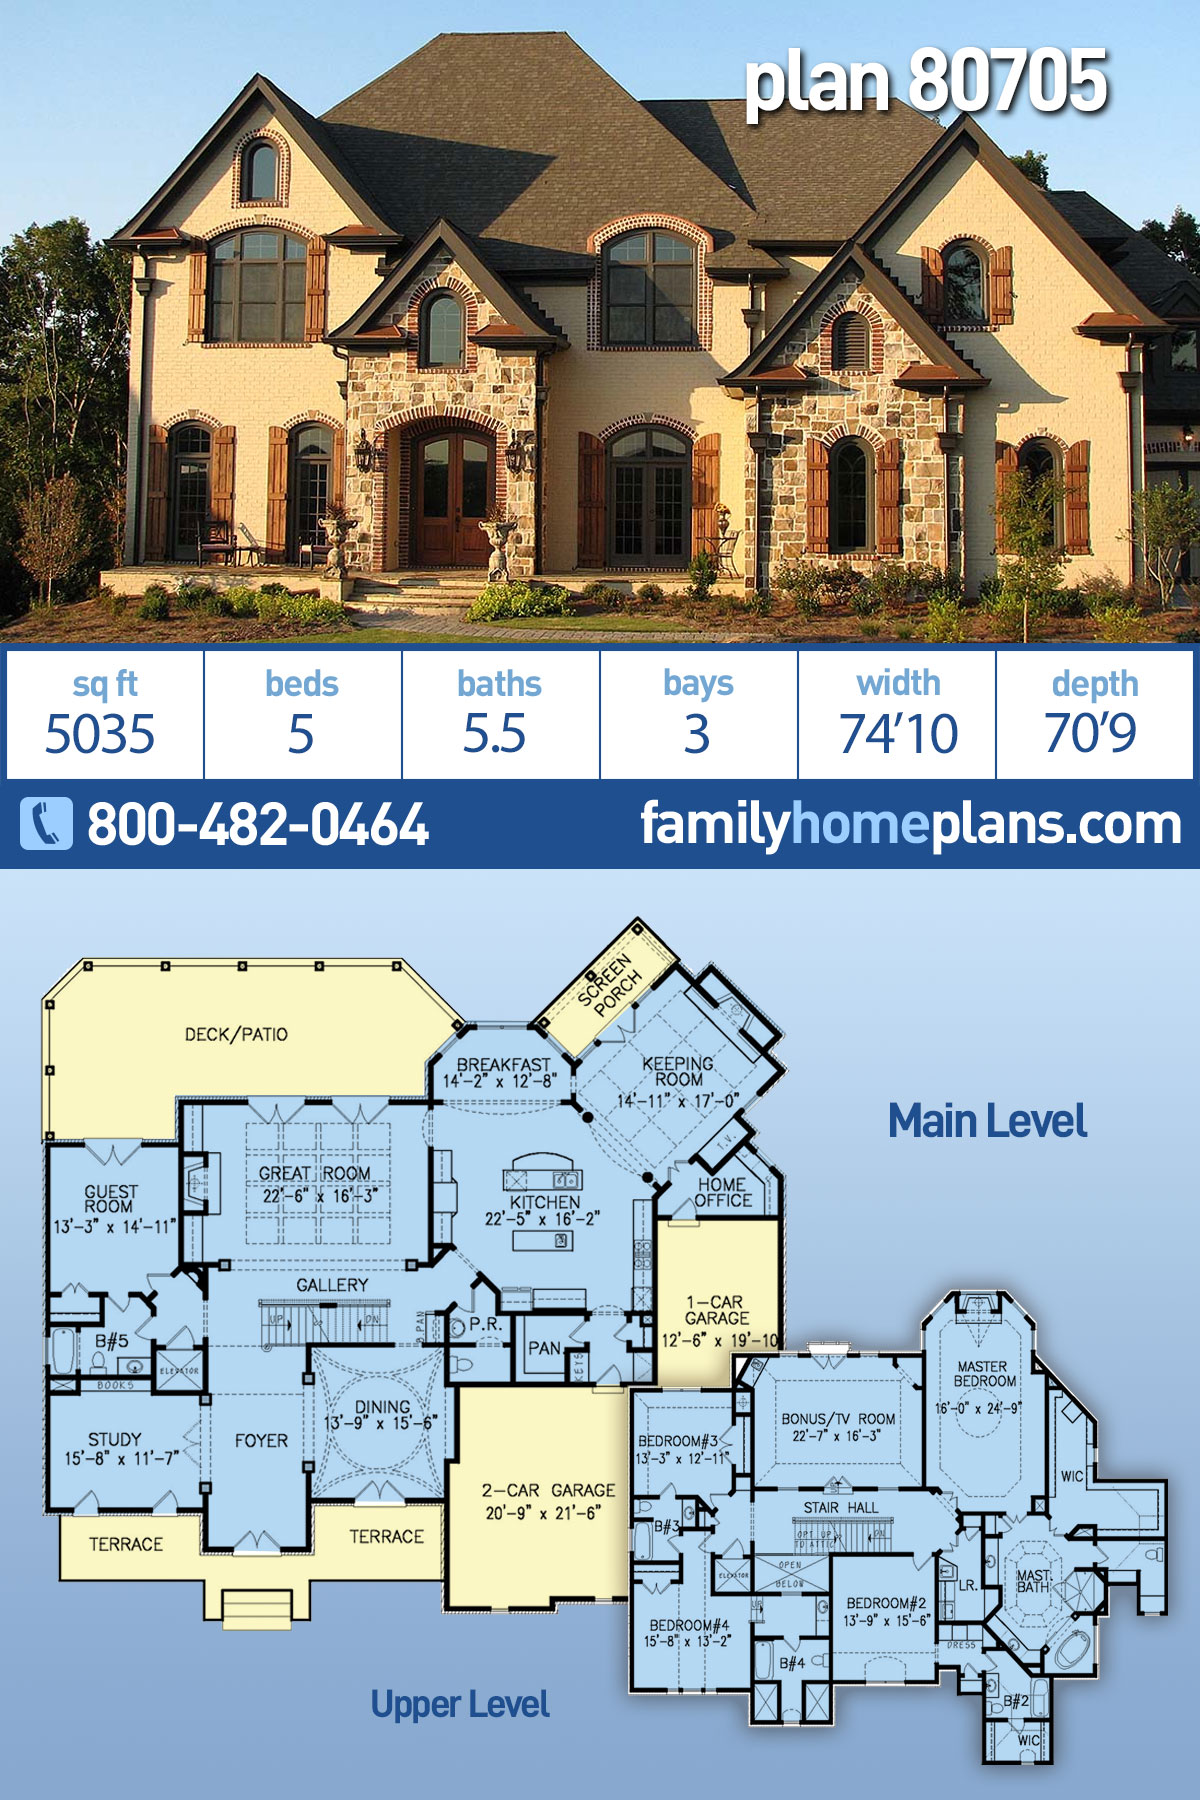 European, French Country, Traditional House Plan 80705 with 5 Beds, 6 Baths, 3 Car Garage